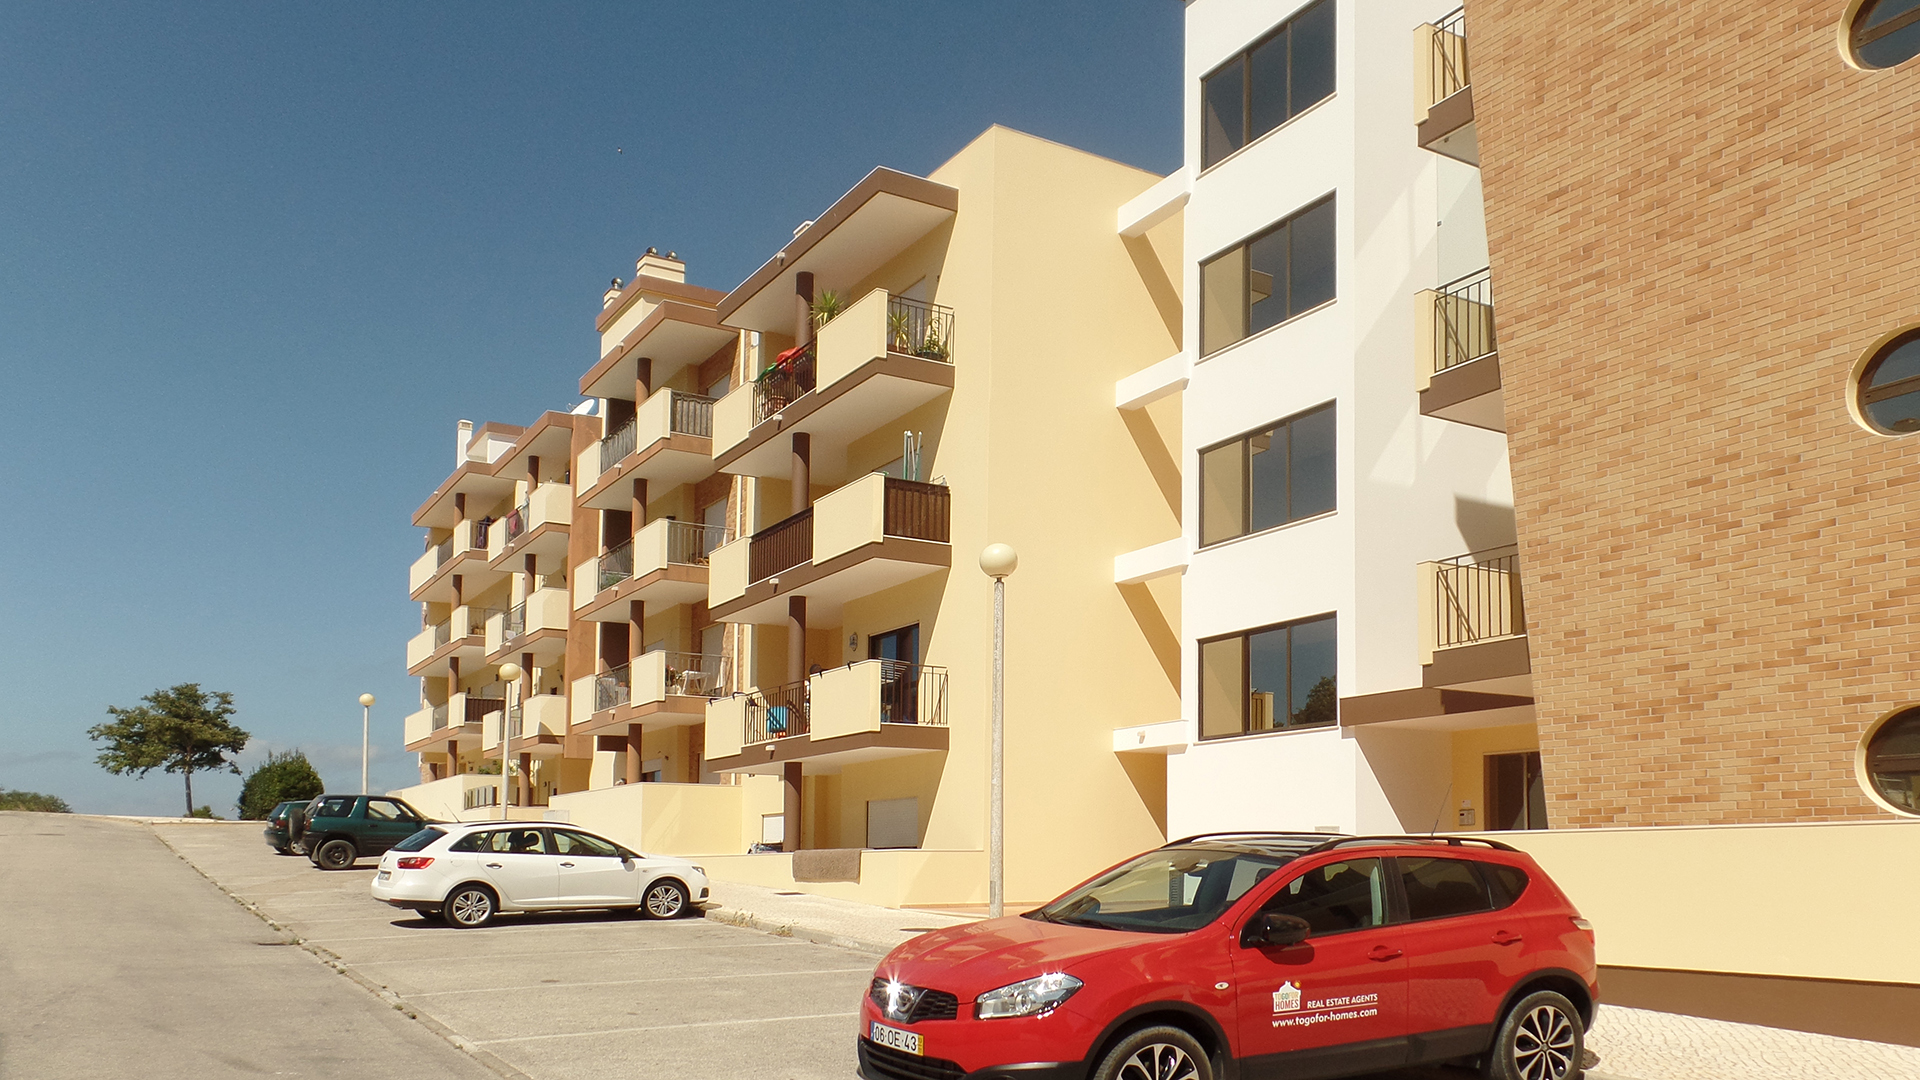 Immaculate 2 bedroom apartment with private parking, Porto de Mós, Lagos, West Algarve | LG1163 Two bedroom spacious apartment, in great location on the outskirts of Porto de Mós and less than 1km from the beach. The property comprises AC, central heating, two bedrooms with fitted wardrobes and two bathrooms - one of which is en-suite. Private parking space in underground garage. Ideal for holidays or permanent living due to its fabulous location.